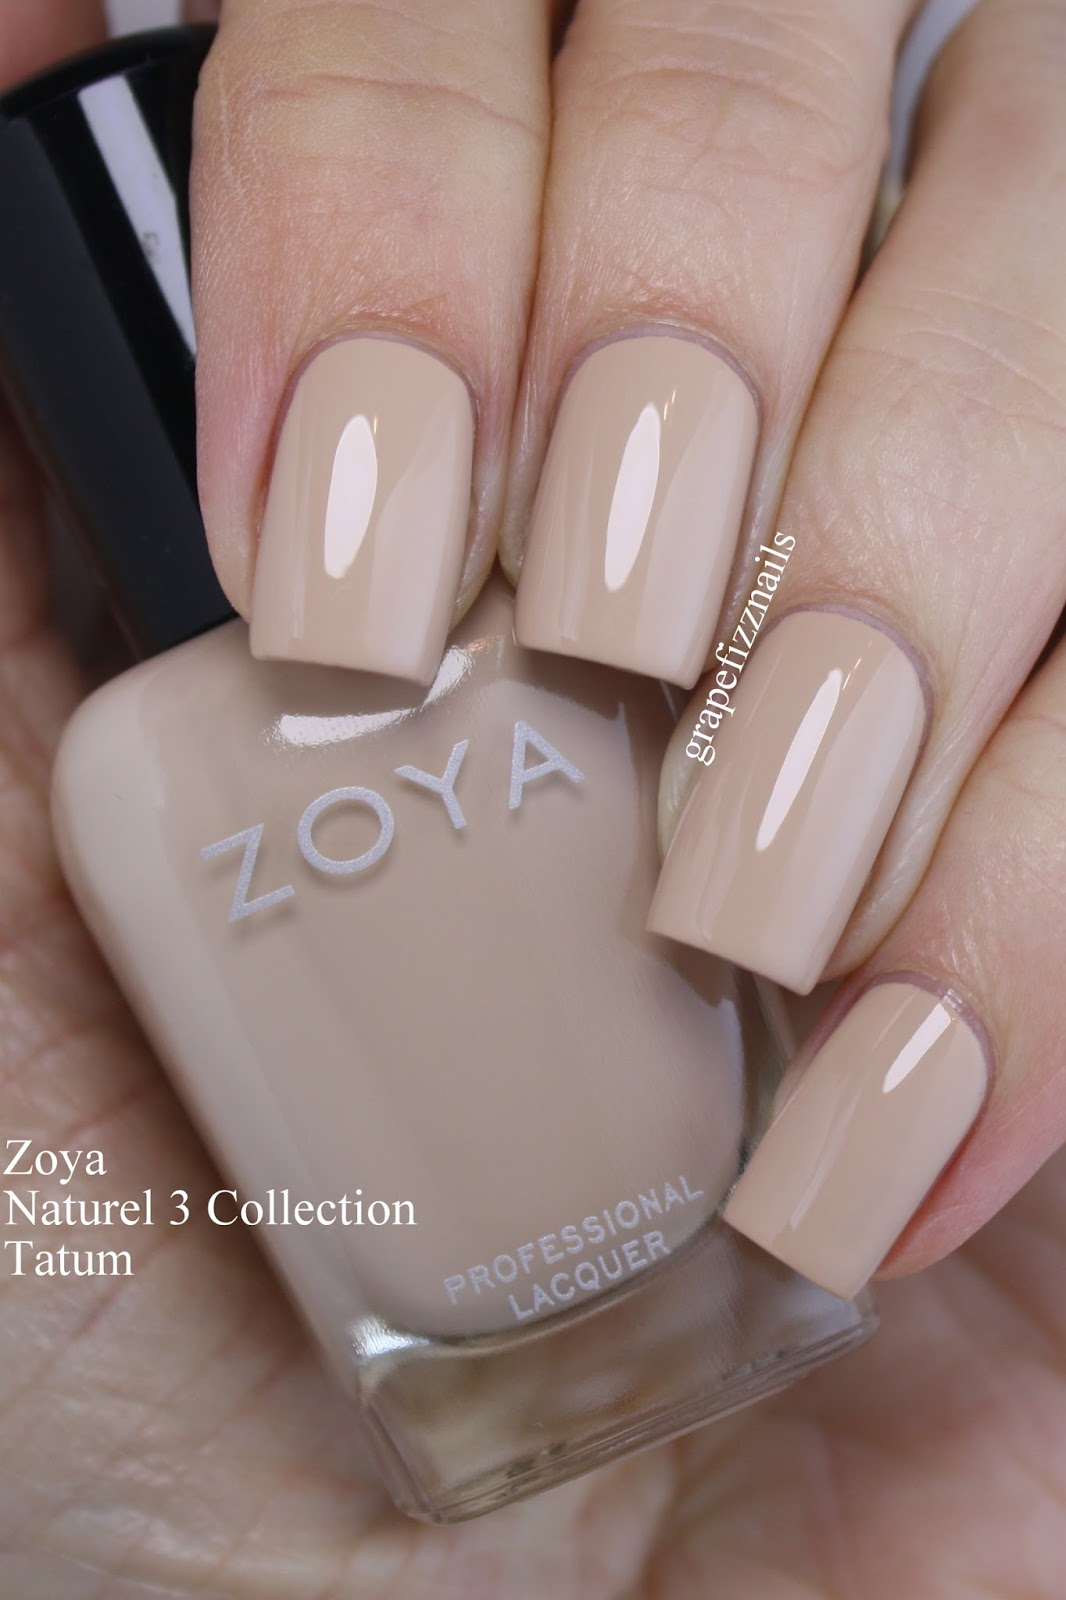 Grape Fizz Nails: Zoya Naturel 3 2017, Swatches and Review